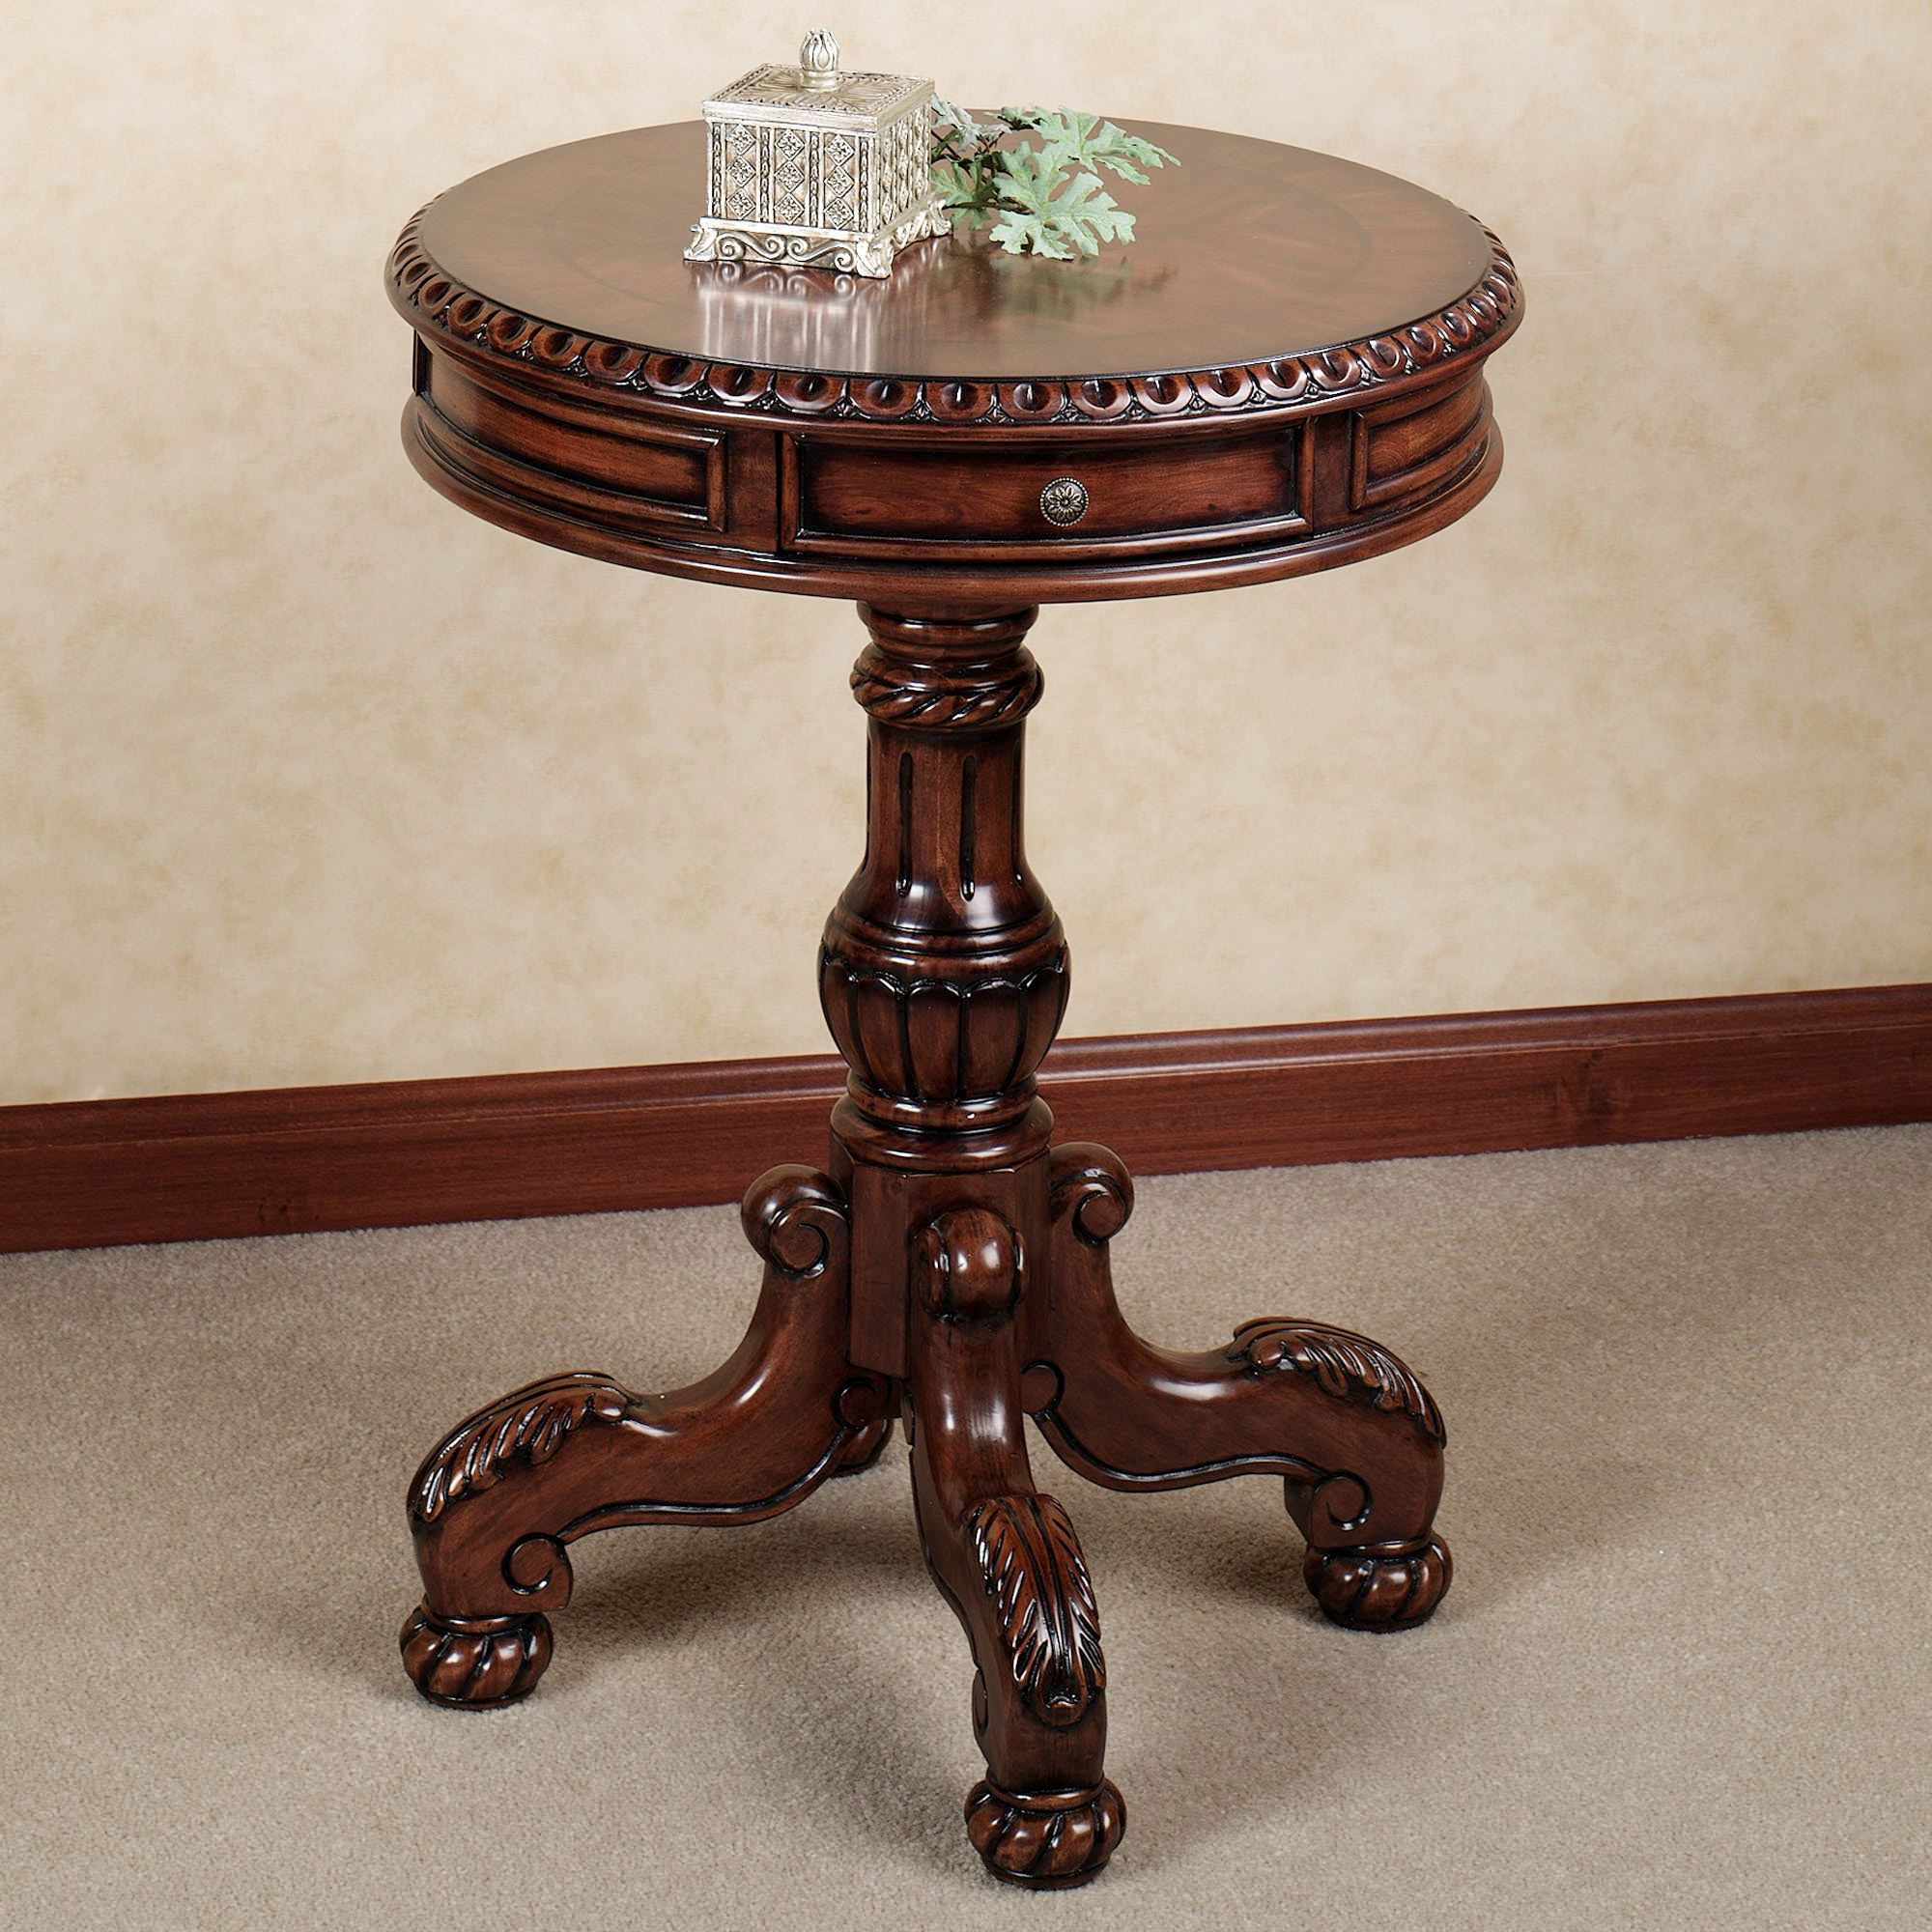 probably fantastic best round end table drawer ture jockboymusic fascinating beside sofa living room featuring white charming design with varnished wooden and ornate pedestal